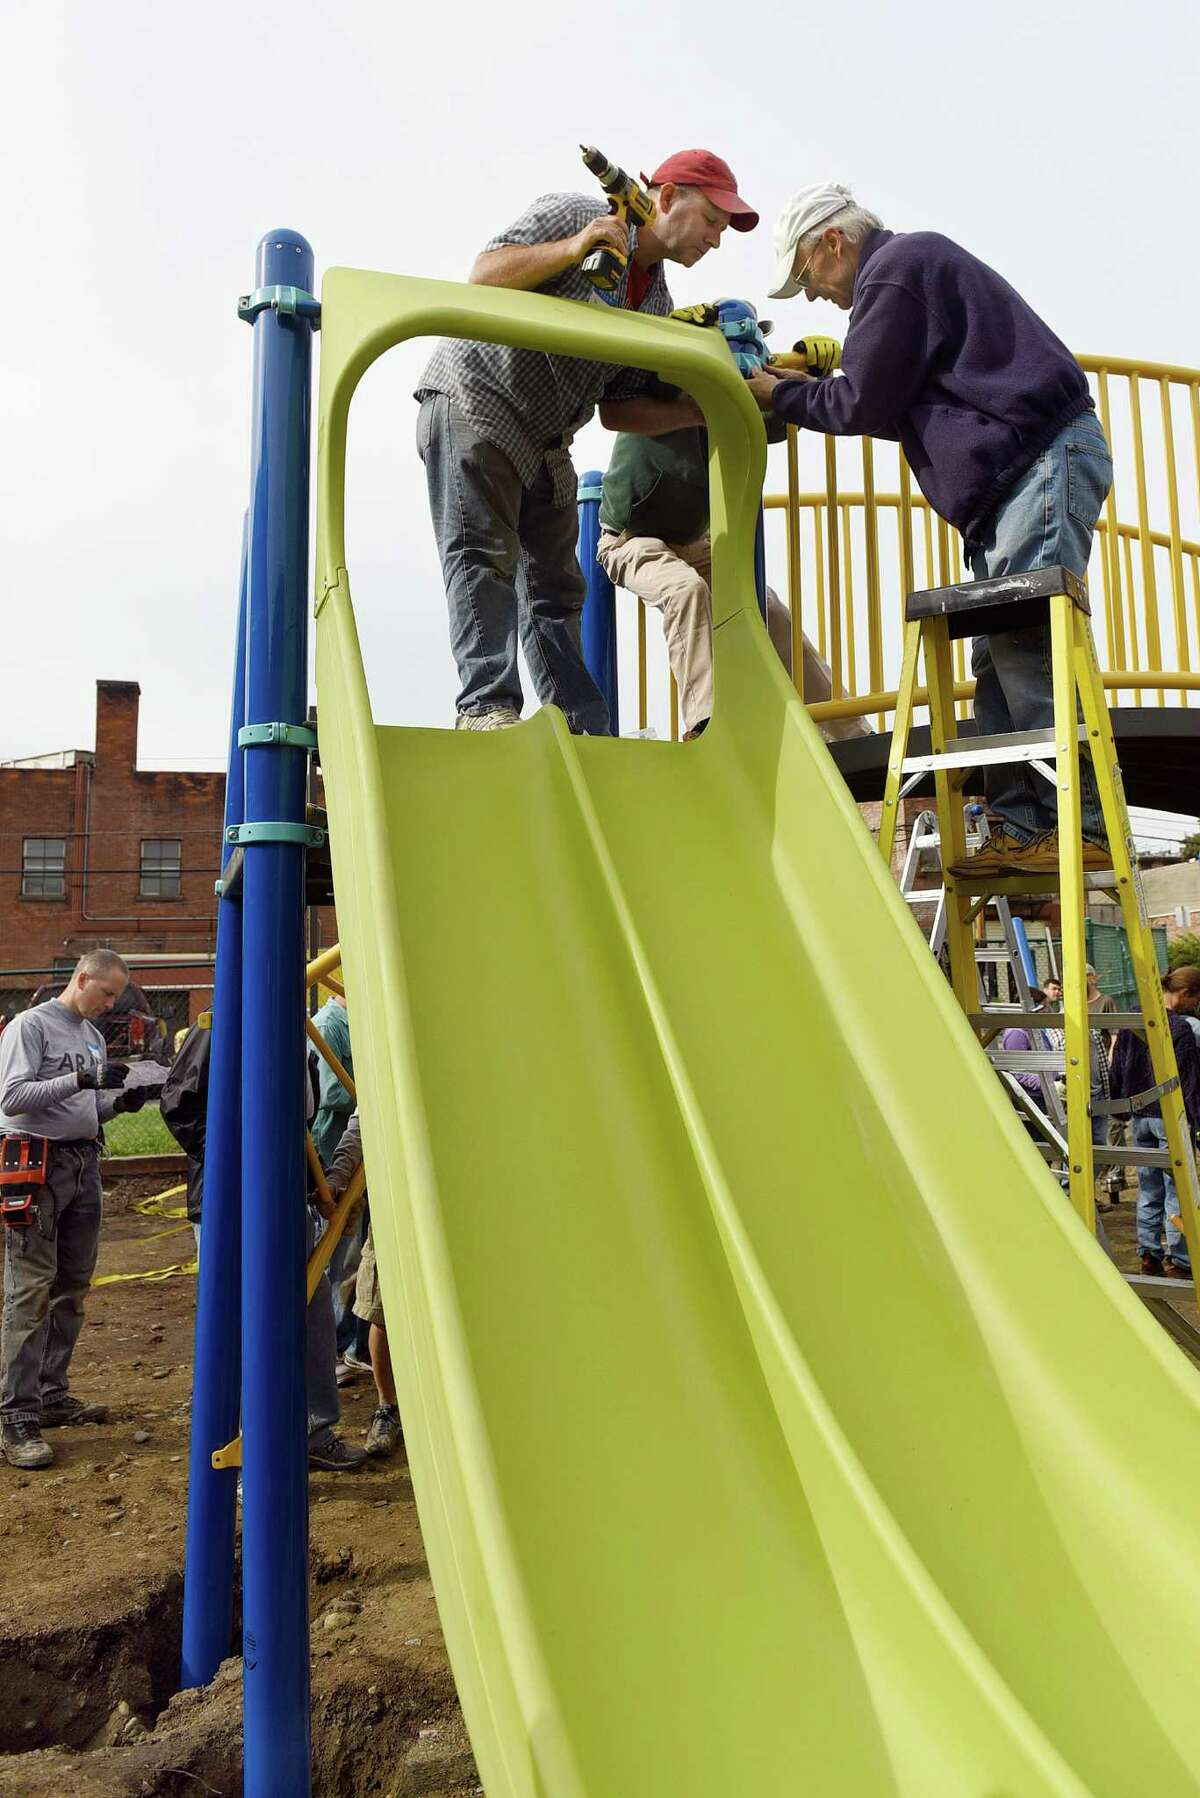 Paul Musser, left, and Rich Sinclair, right, of First Unitarian Universalist Society of Albany, attaches slide on the new playground on Saturday, Oct. 8, 2016, at Sheridan Preparatory Academy in Albany, N.Y. Other groups include Alpha Phi Alpha Fraternity Inc., UAlbany's Project U, Jack and Jill of America Greater Albany Chapter and SPA teachers, staff and families. Support for the project includes a $15,000 Let?'s Play Community Construction Grant from Dr. Pepper Snapple Group and national non-profit KaBOOM! SPA has raised $50,000 of its $60,000 goal for the project, and it has a Red Basket fundraising site to help raise the rest. To contribute, visit https://redbasket.org/1074 (Cindy Schultz / Times Union)